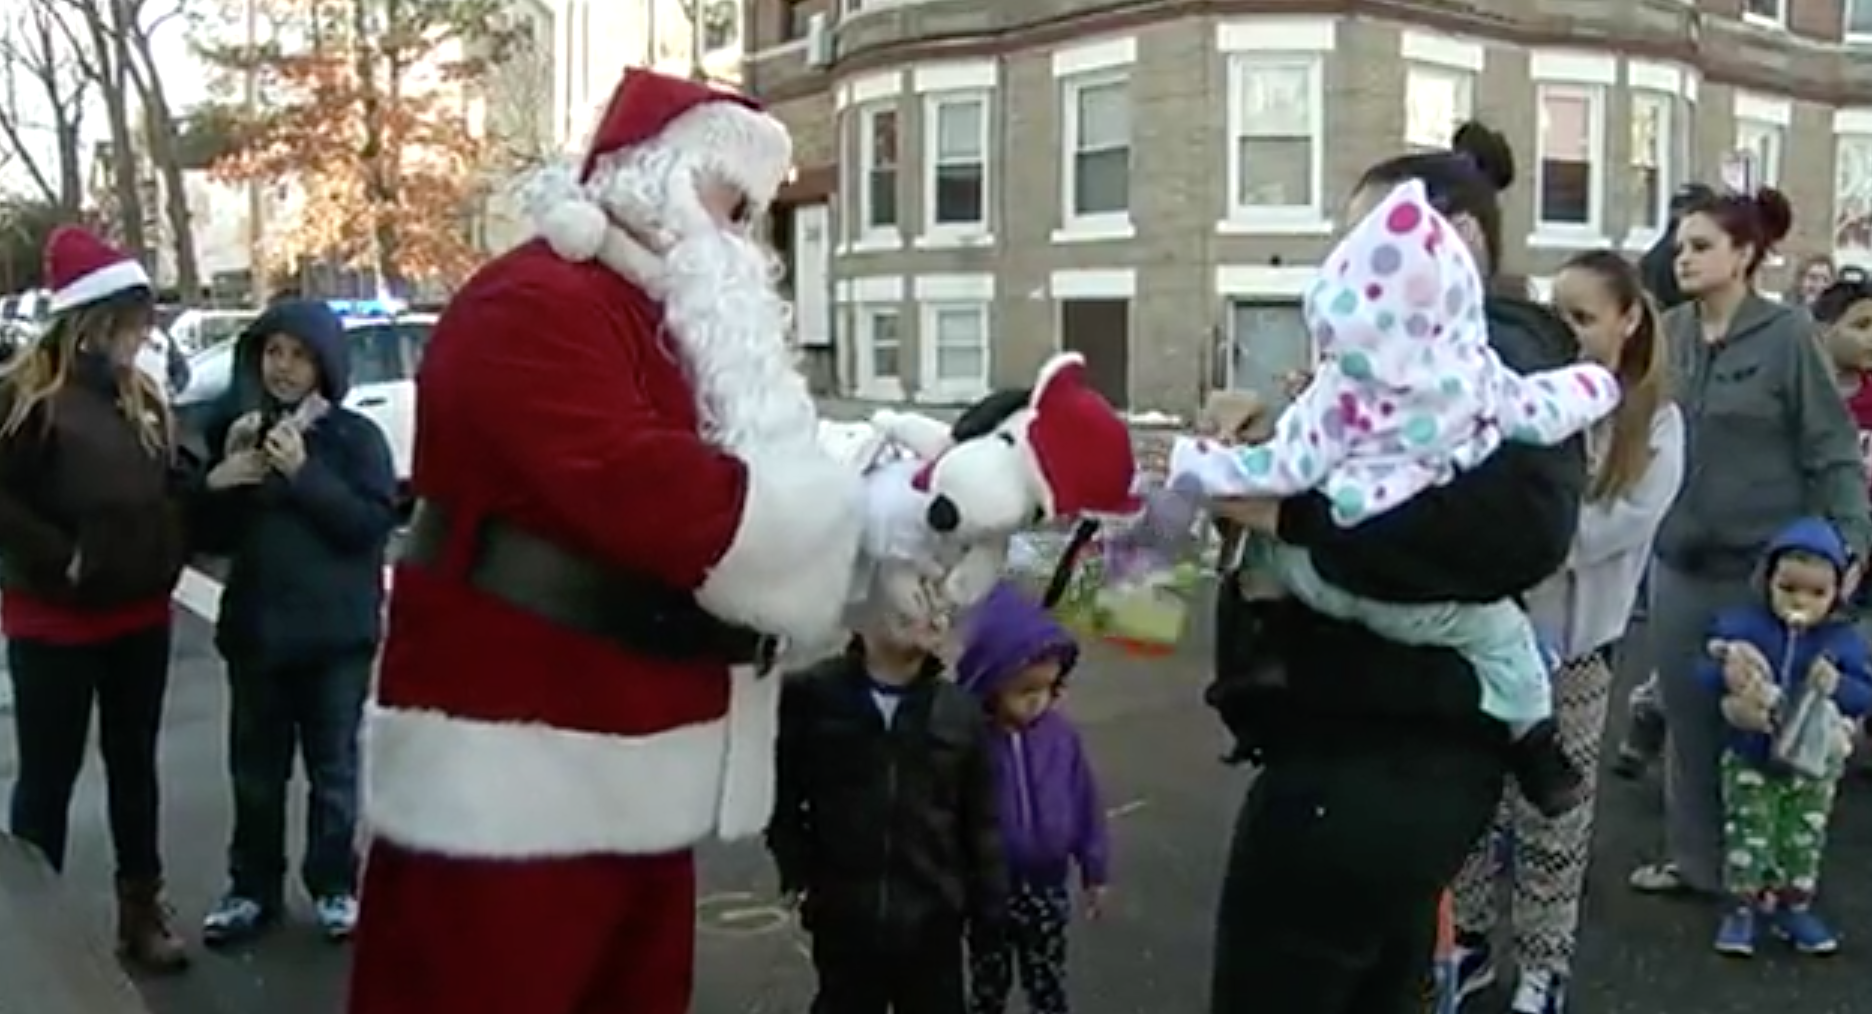 Watch A Massachusetts Police Department Deliver Christmas Gifts For Needy Children Featured